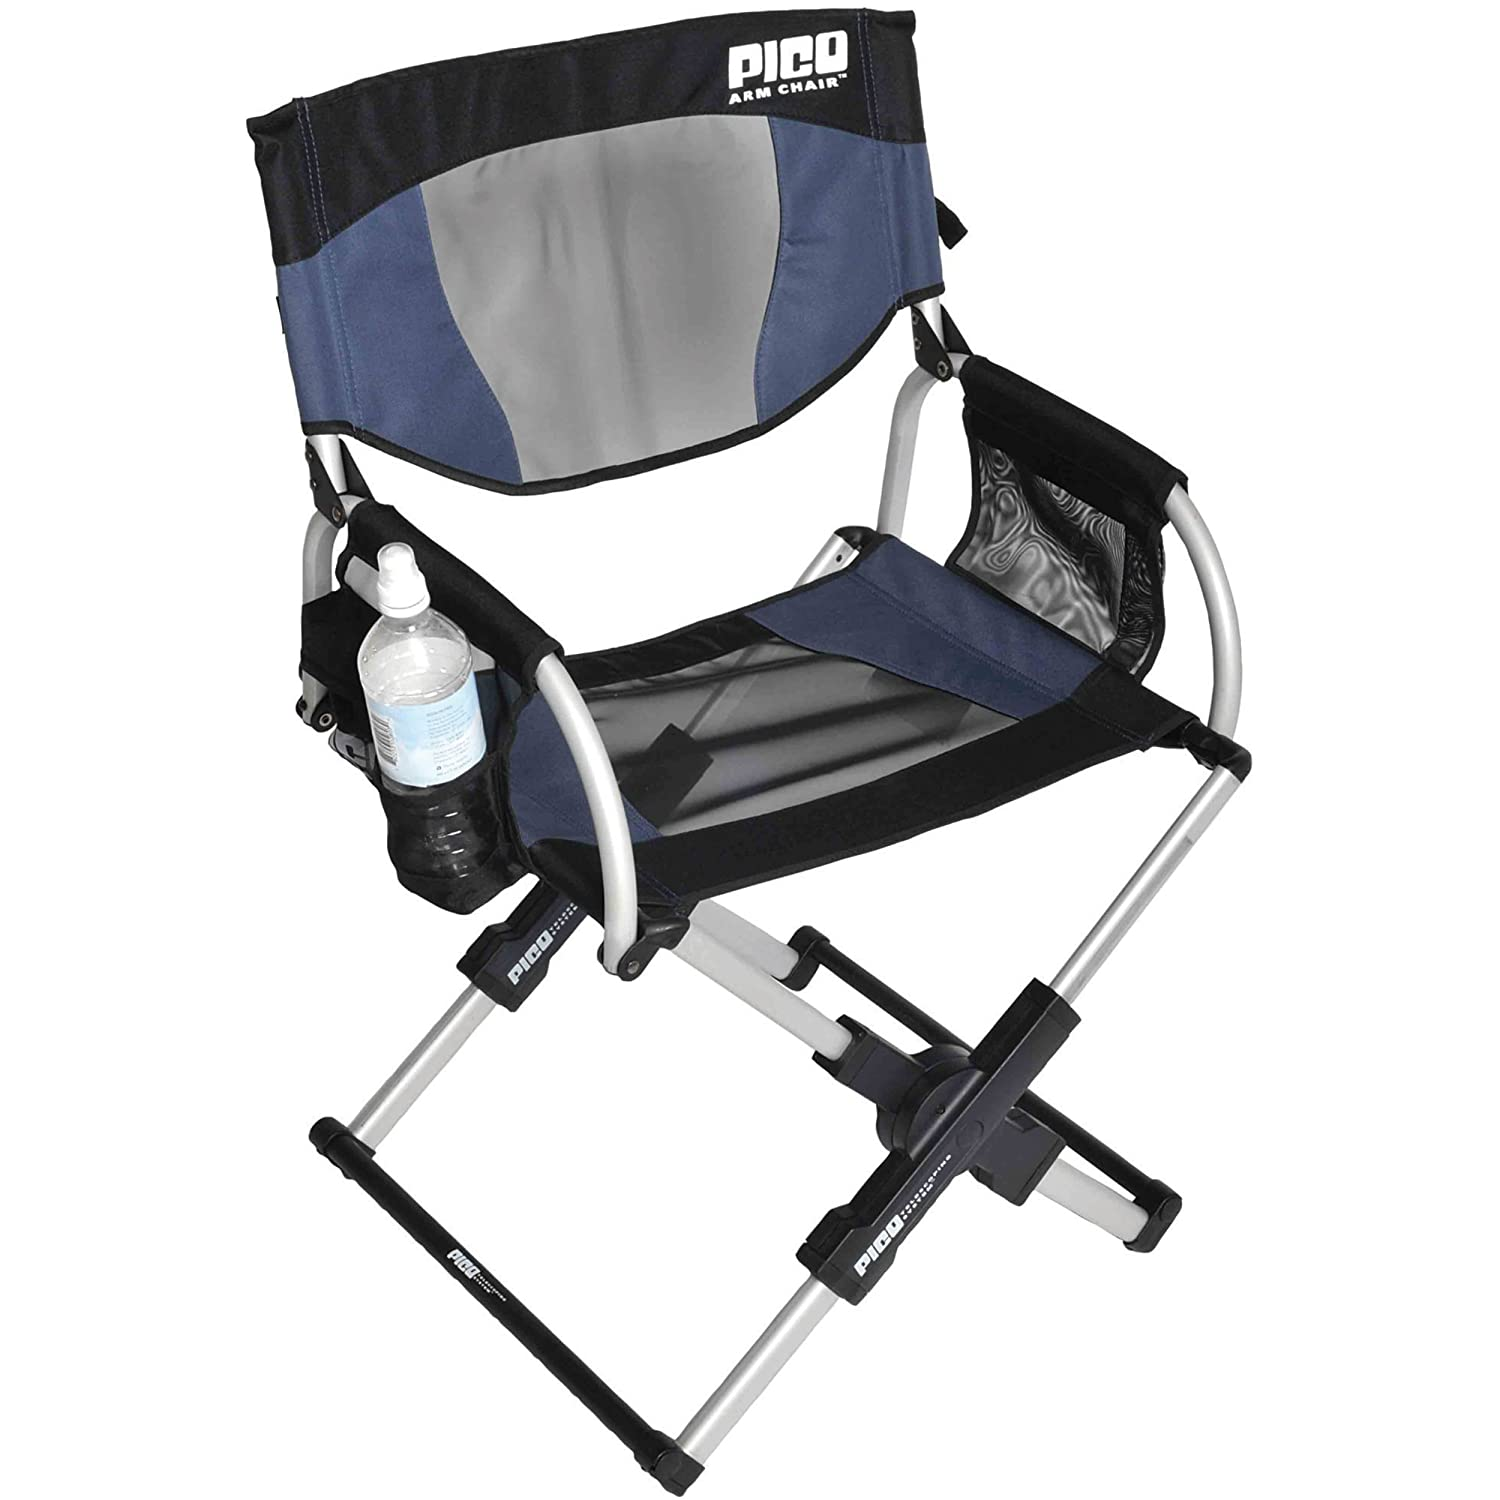 Amazon GCI Outdoor Pico pact Folding Camp Chair with